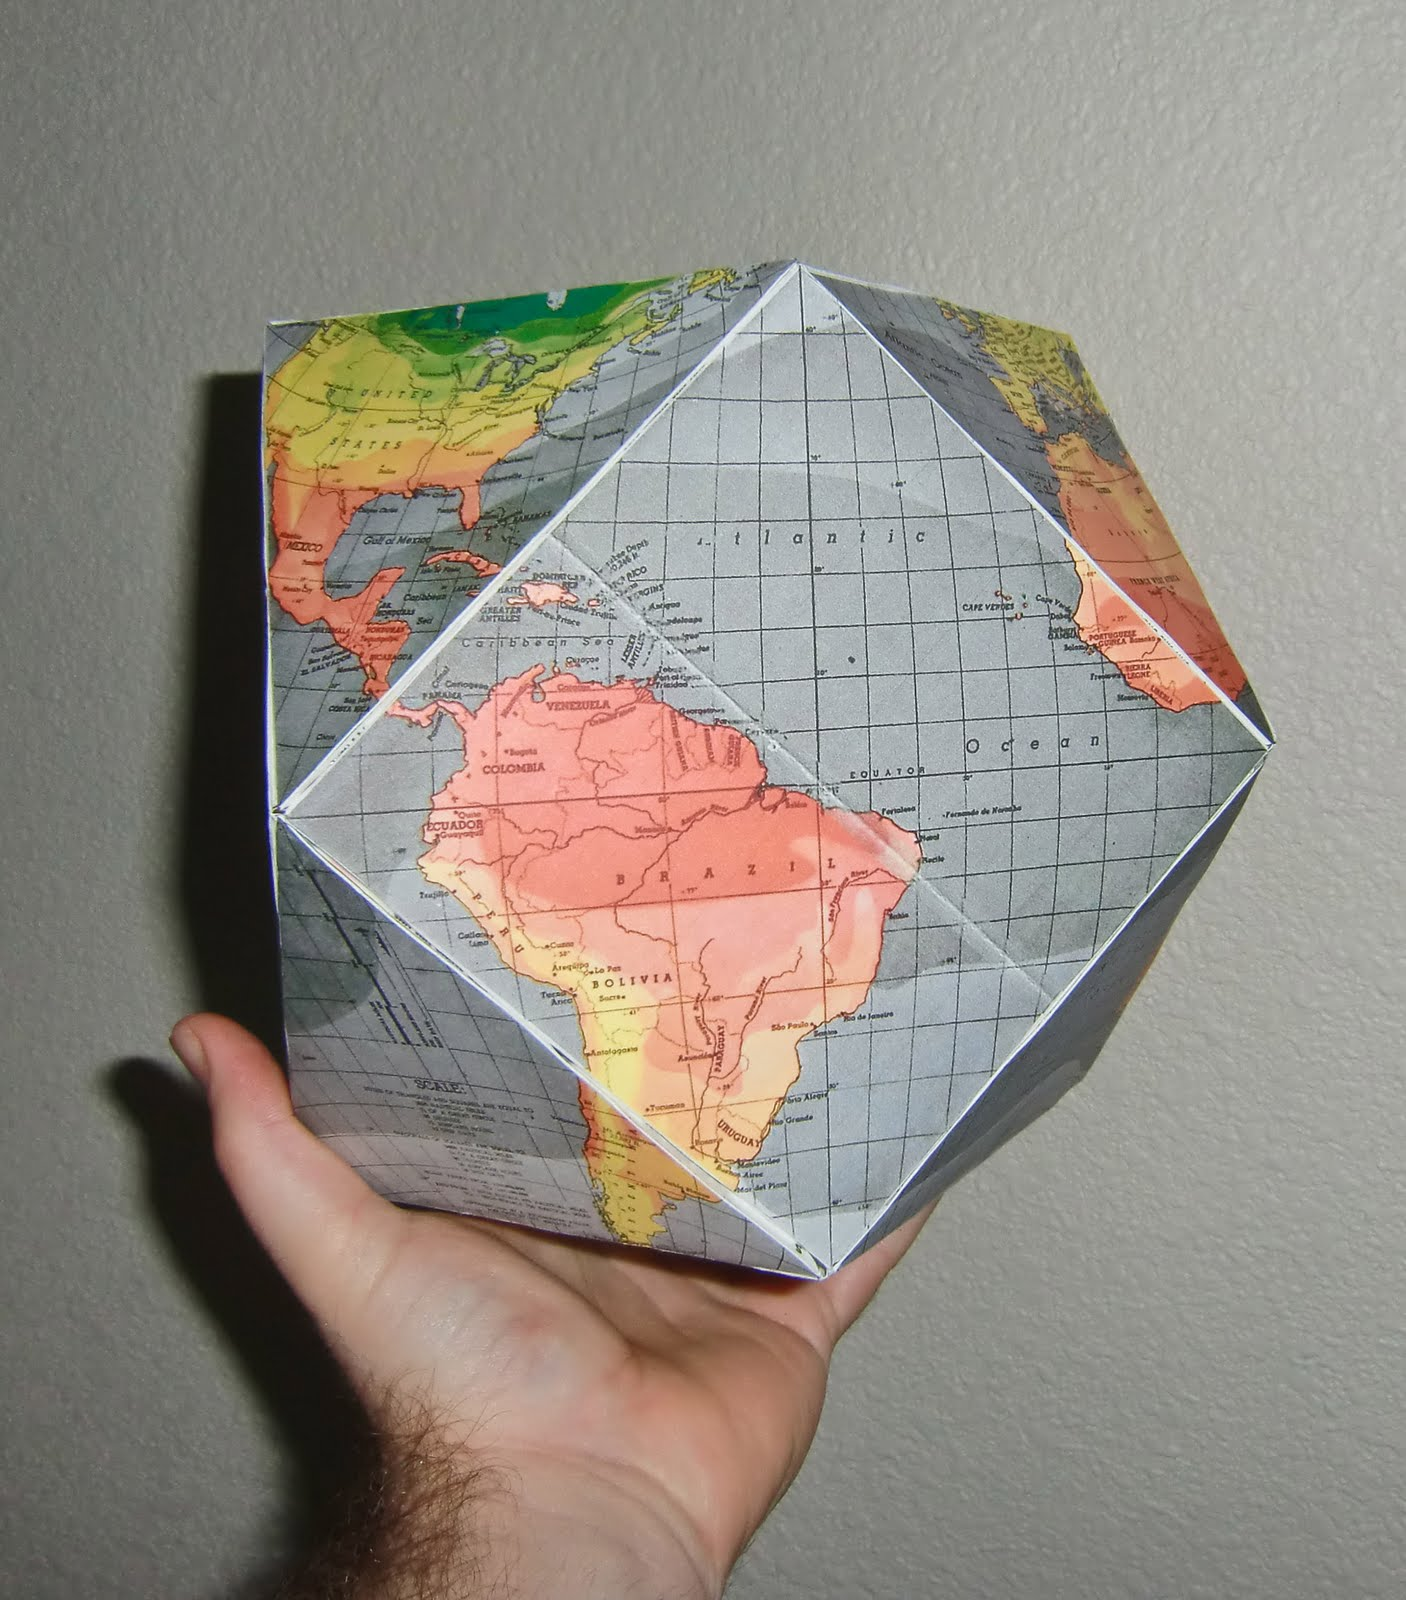 An ocean of knowledge an inch deep dymaxion world cubeoctahedron globe dymaxion world cubeoctahedron globe gumiabroncs Images